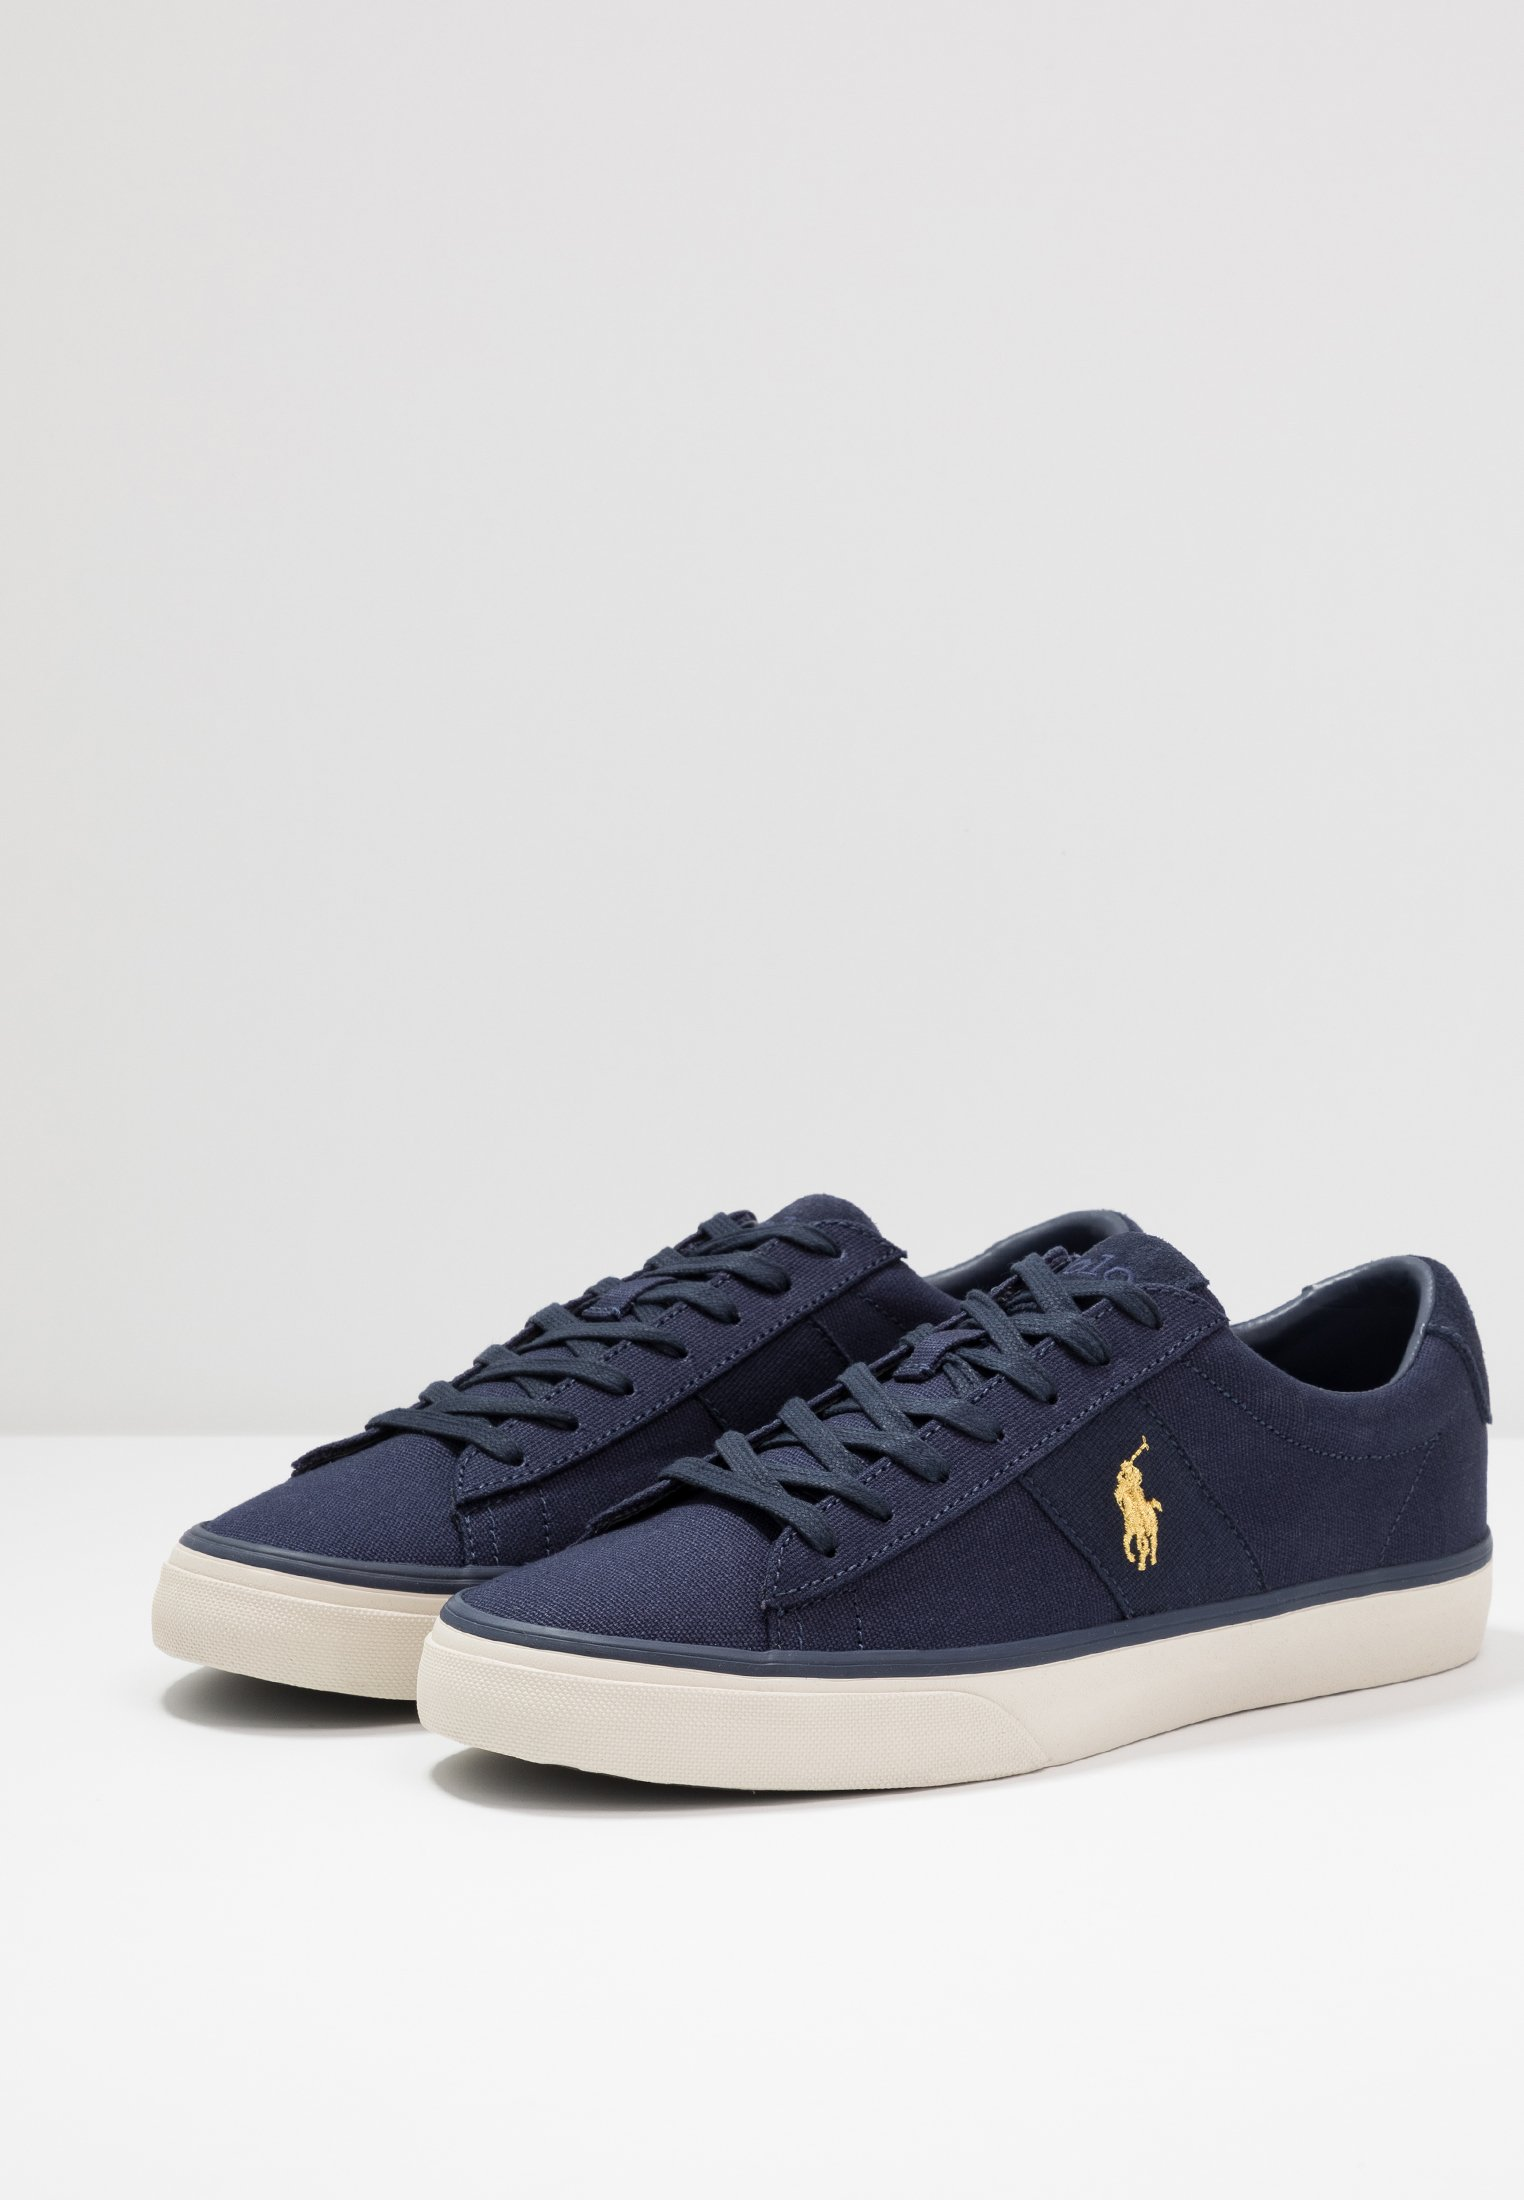 Polo Ralph Lauren Sayer - Baskets Basses Navy/gold